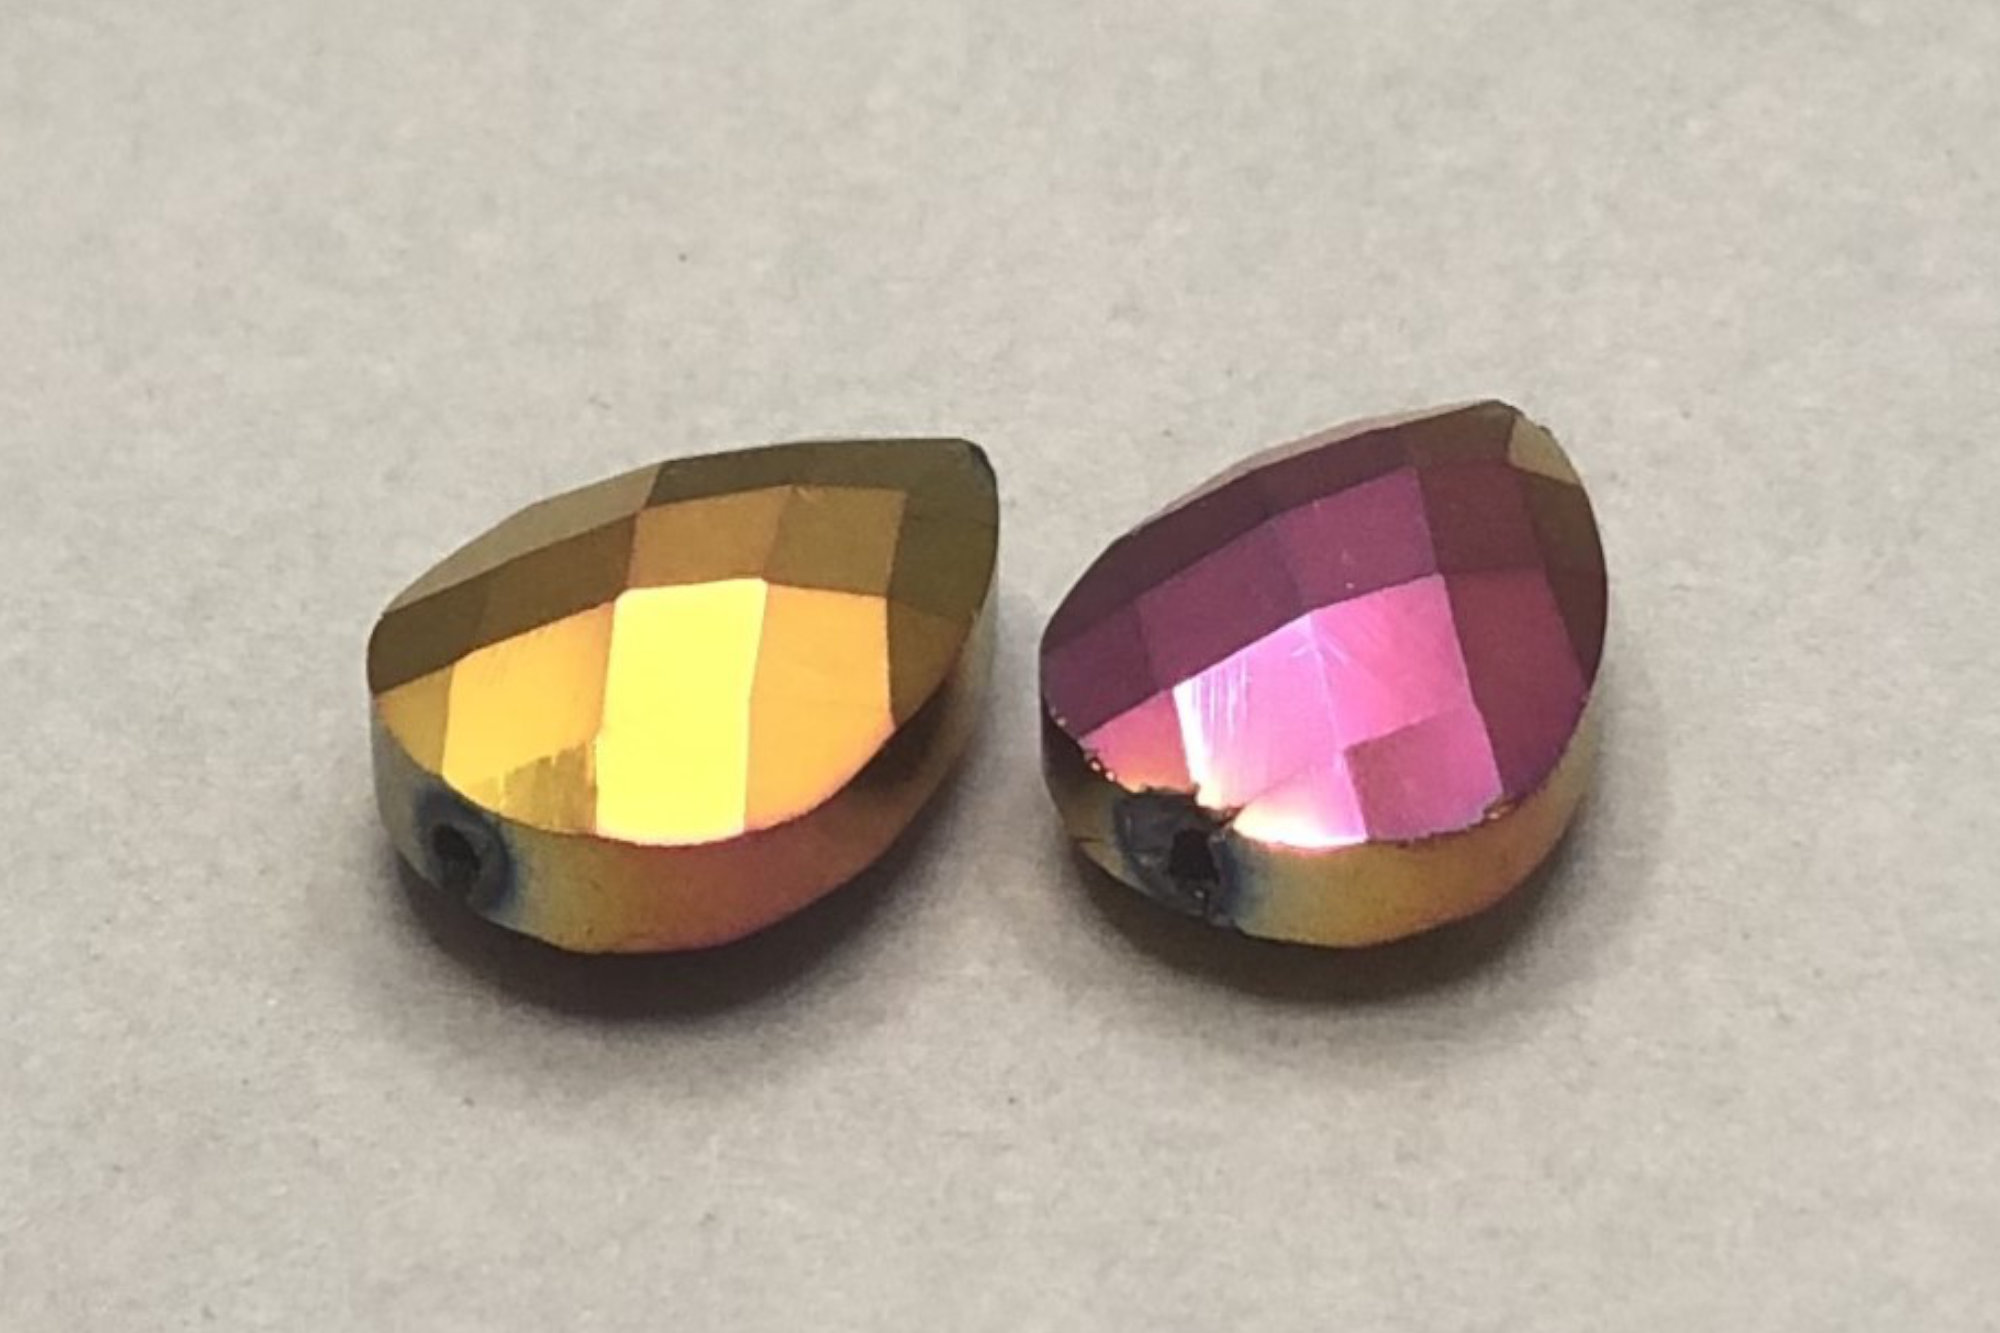 Metallic Pink/Gold Pear Shape Faceted Glass Bead 18x13x8mm